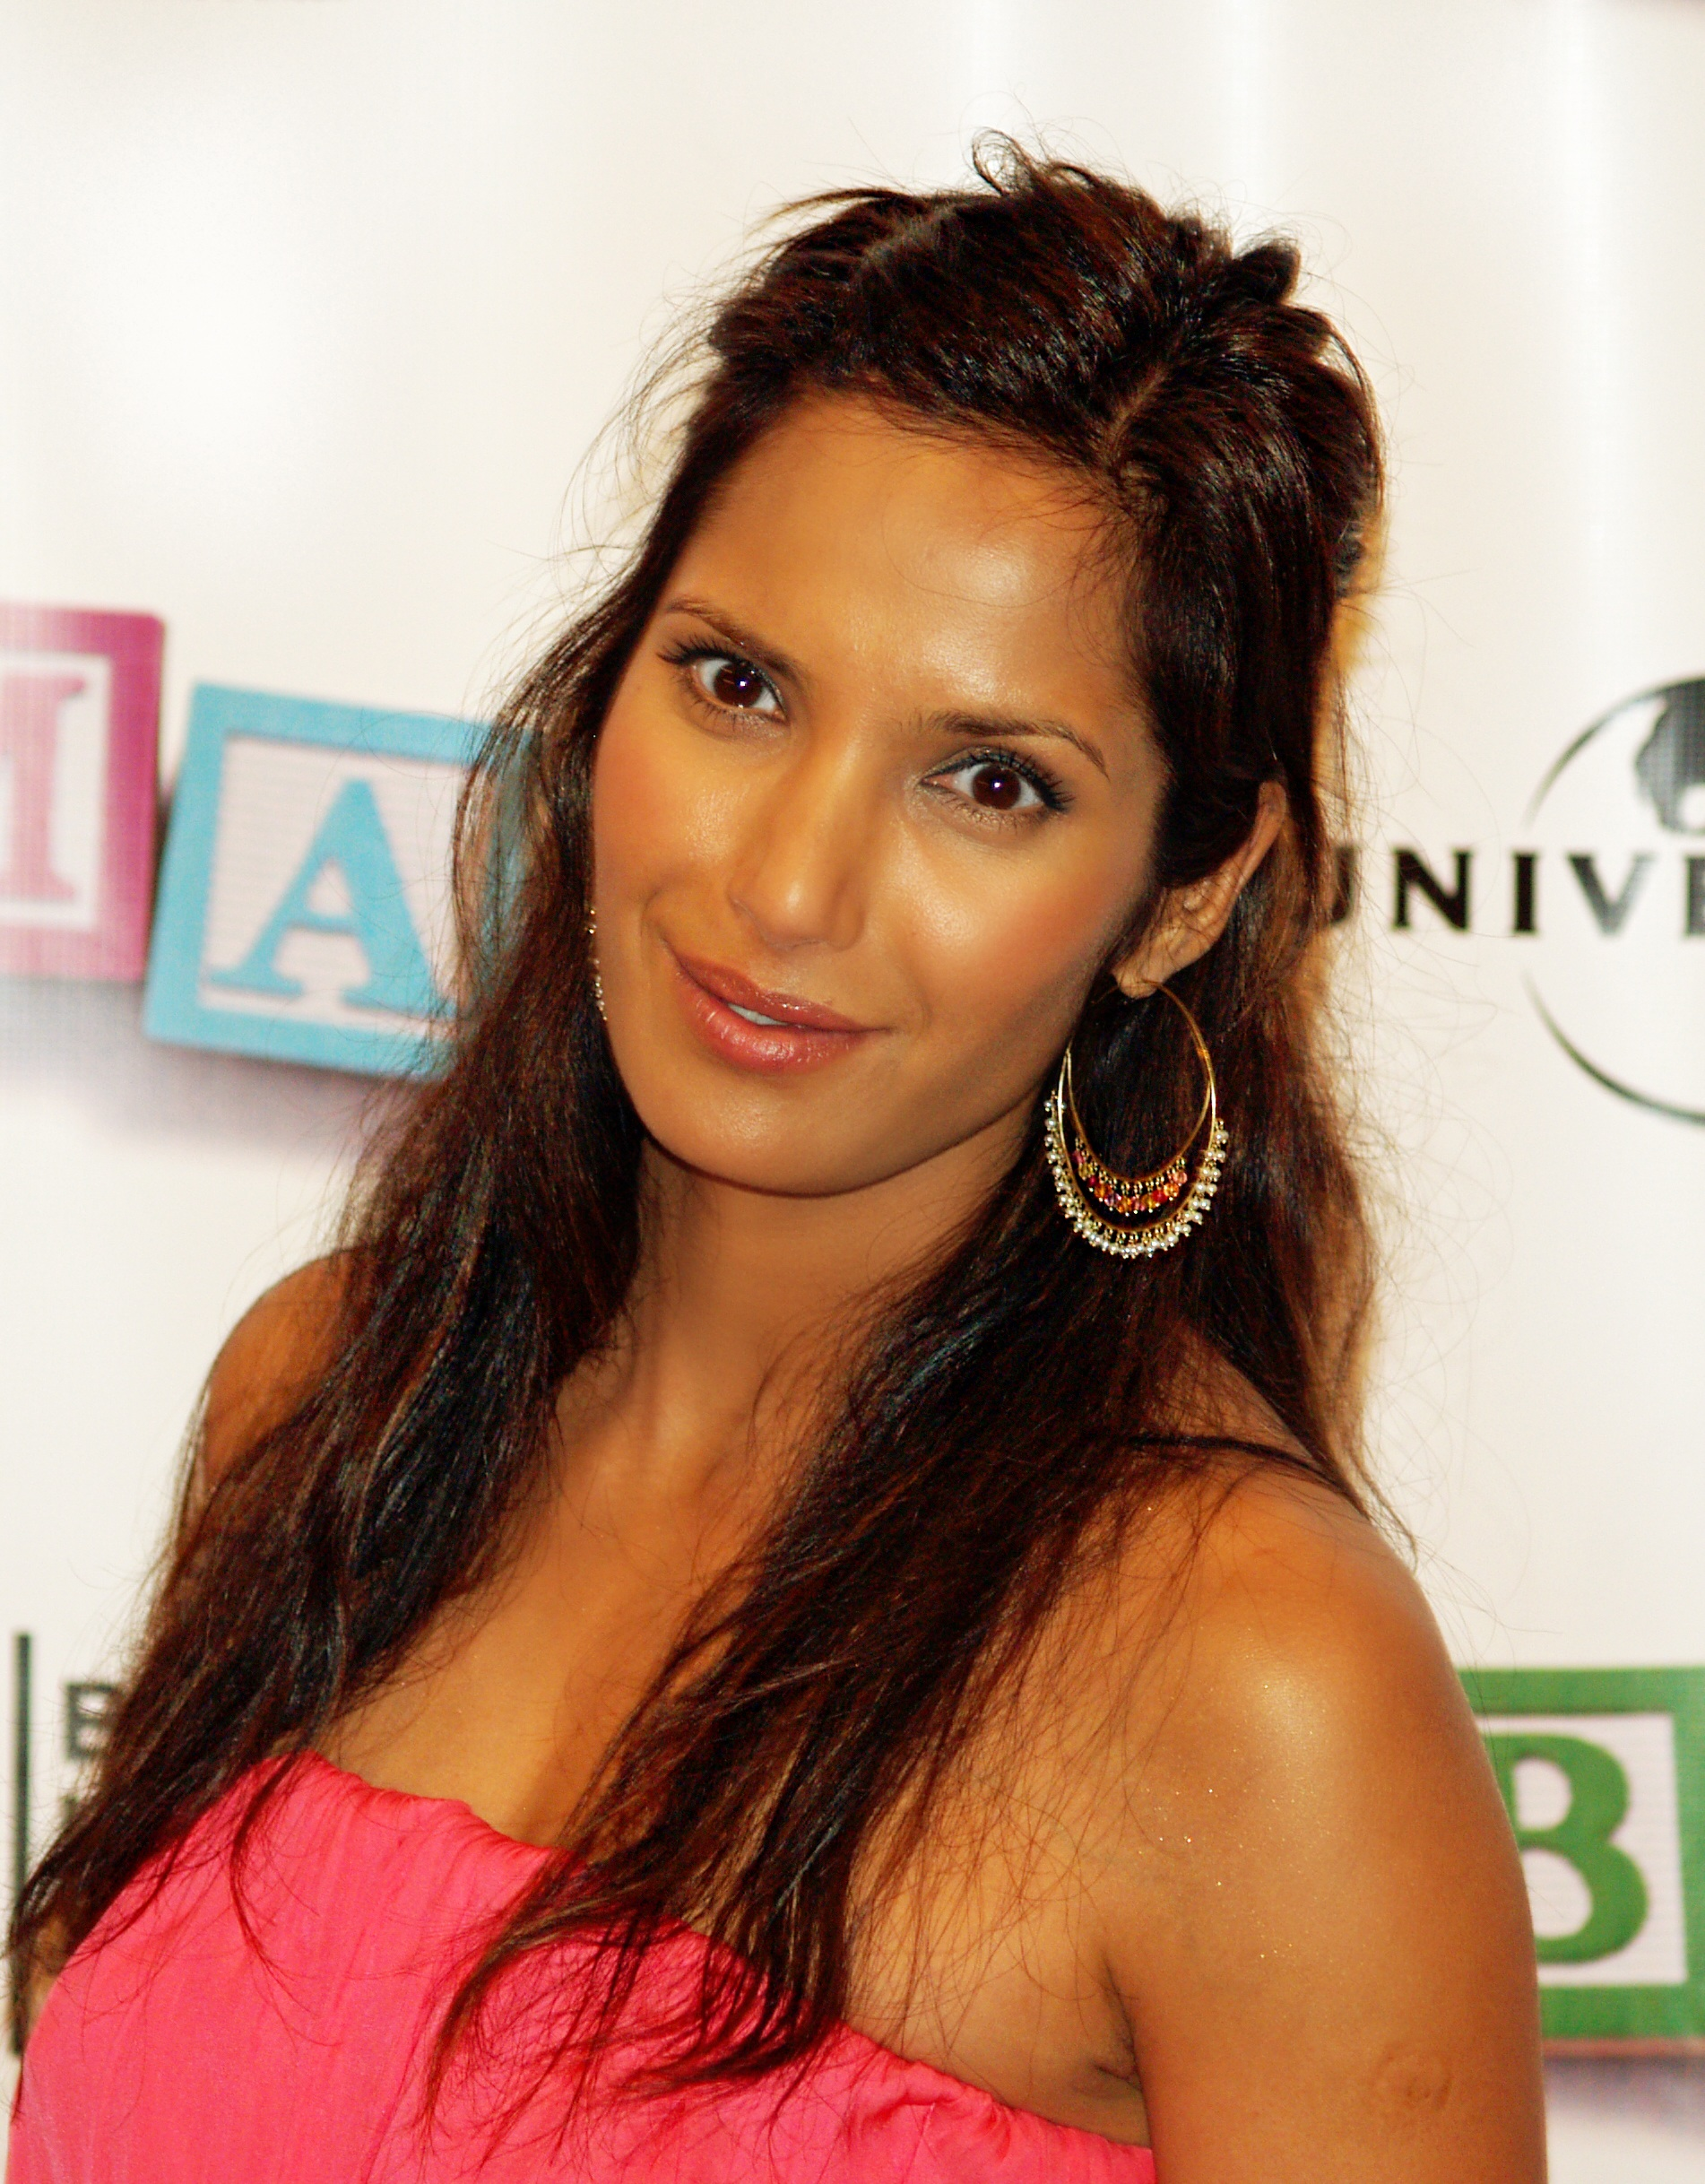 padma lakshmi twitterpadma lakshmi fansite, padma lakshmi book, padma lakshmi height, padma lakshmi wiki, padma lakshmi age, padma lakshmi photo, padma lakshmi elle, padma lakshmi daughter, padma lakshmi instagram, padma lakshmi dell, padma lakshmi, padma lakshmi richard gere, padma lakshmi adam dell, padma lakshmi boyfriend, padma lakshmi recipes, padma lakshmi child, padma lakshmi diet, padma lakshmi twitter, padma lakshmi wikipedia, padma lakshmi top chef